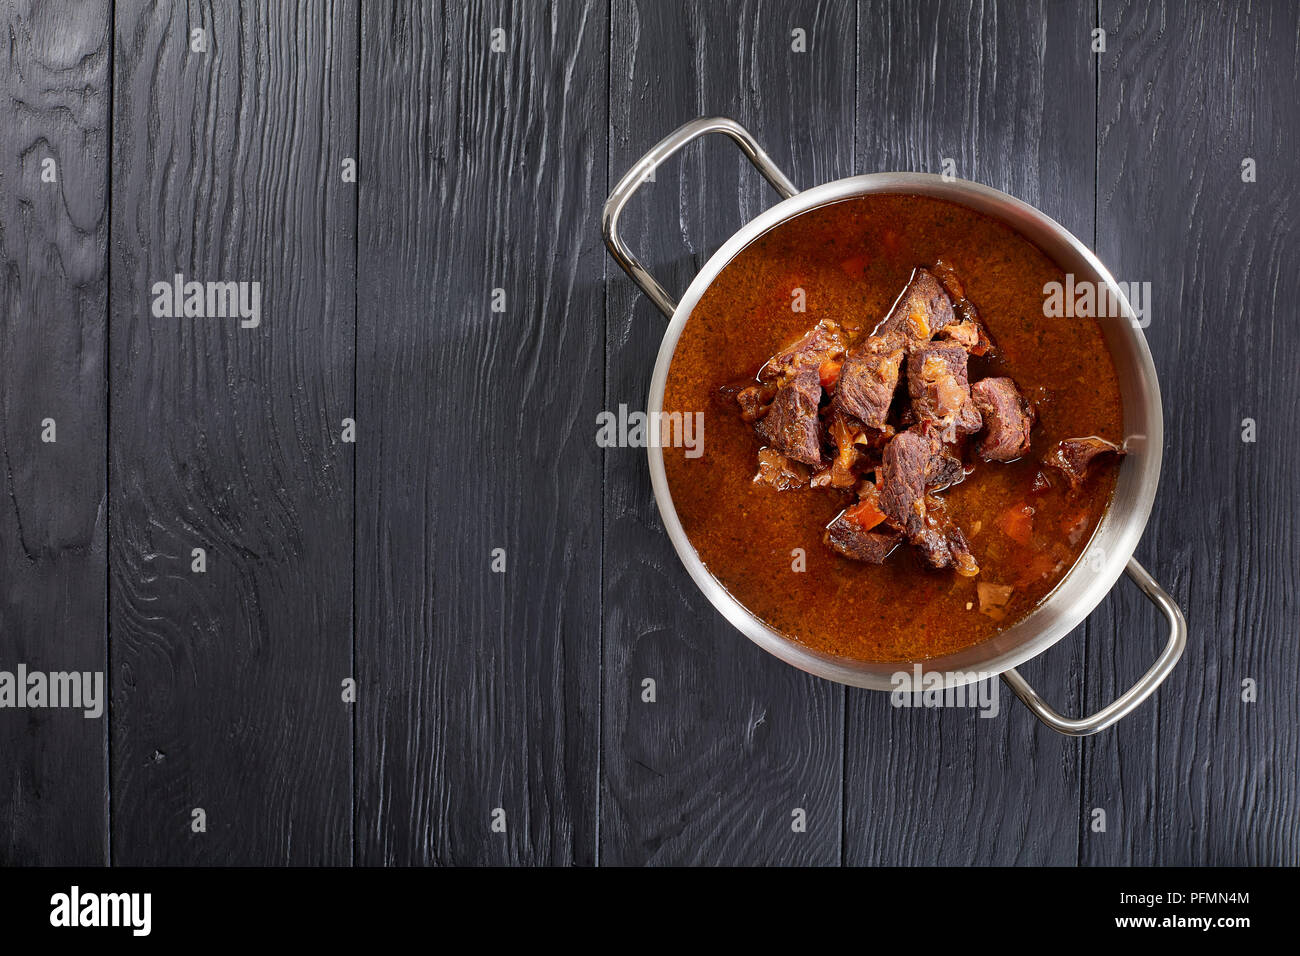 homemade hot Czech beef goulash in a stainless pan on black wooden table, view from above Stock Photo